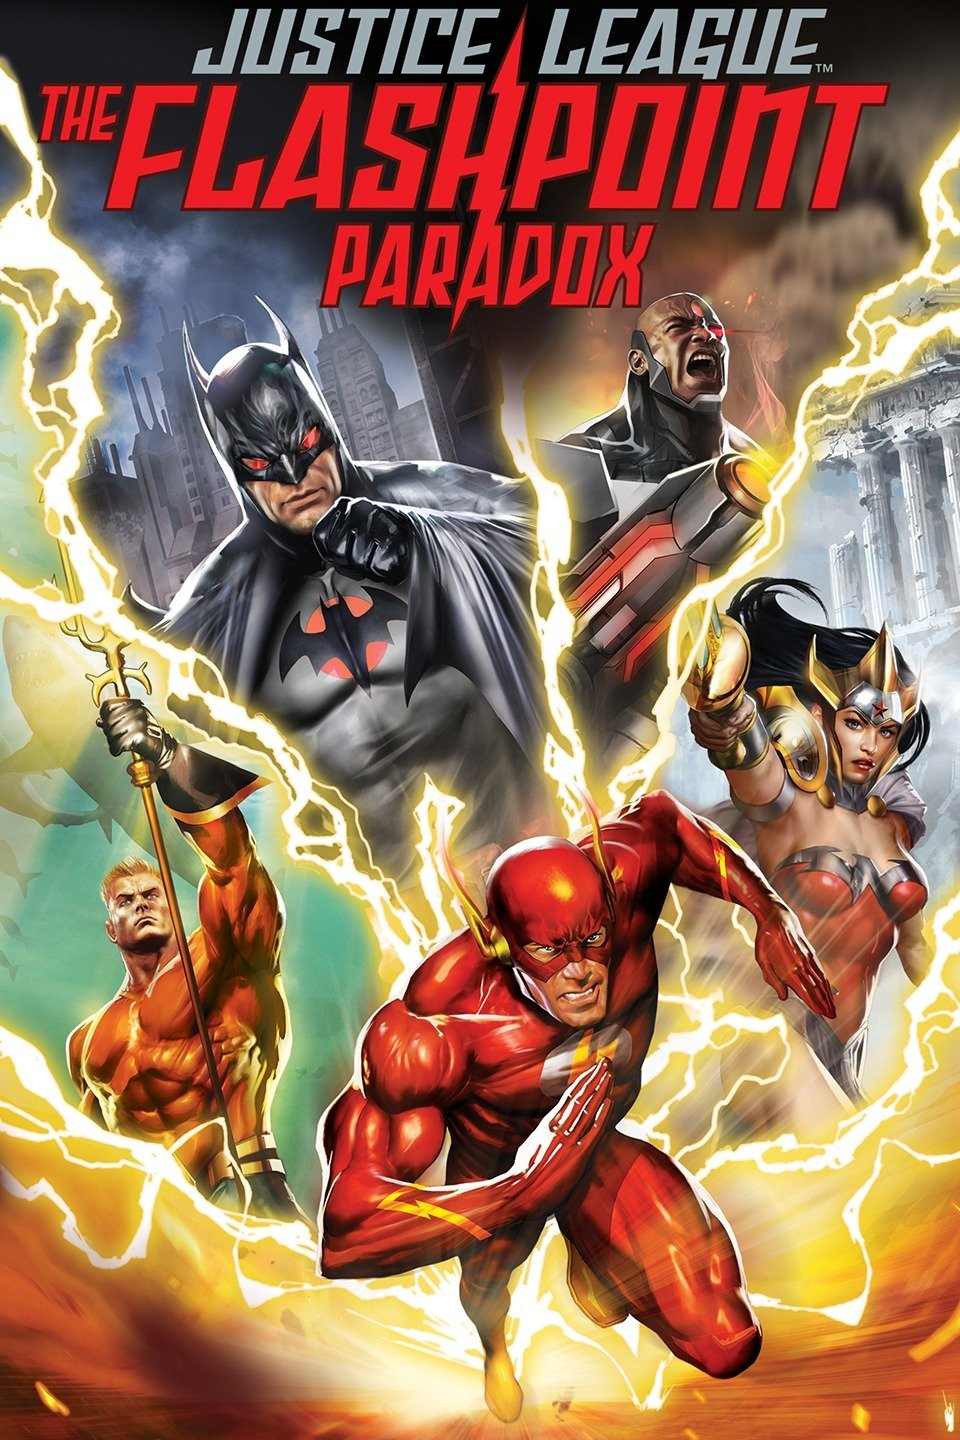 The Justice Tarot Card Meaning In Readings Verdict: Justice League: The Flashpoint Paradox